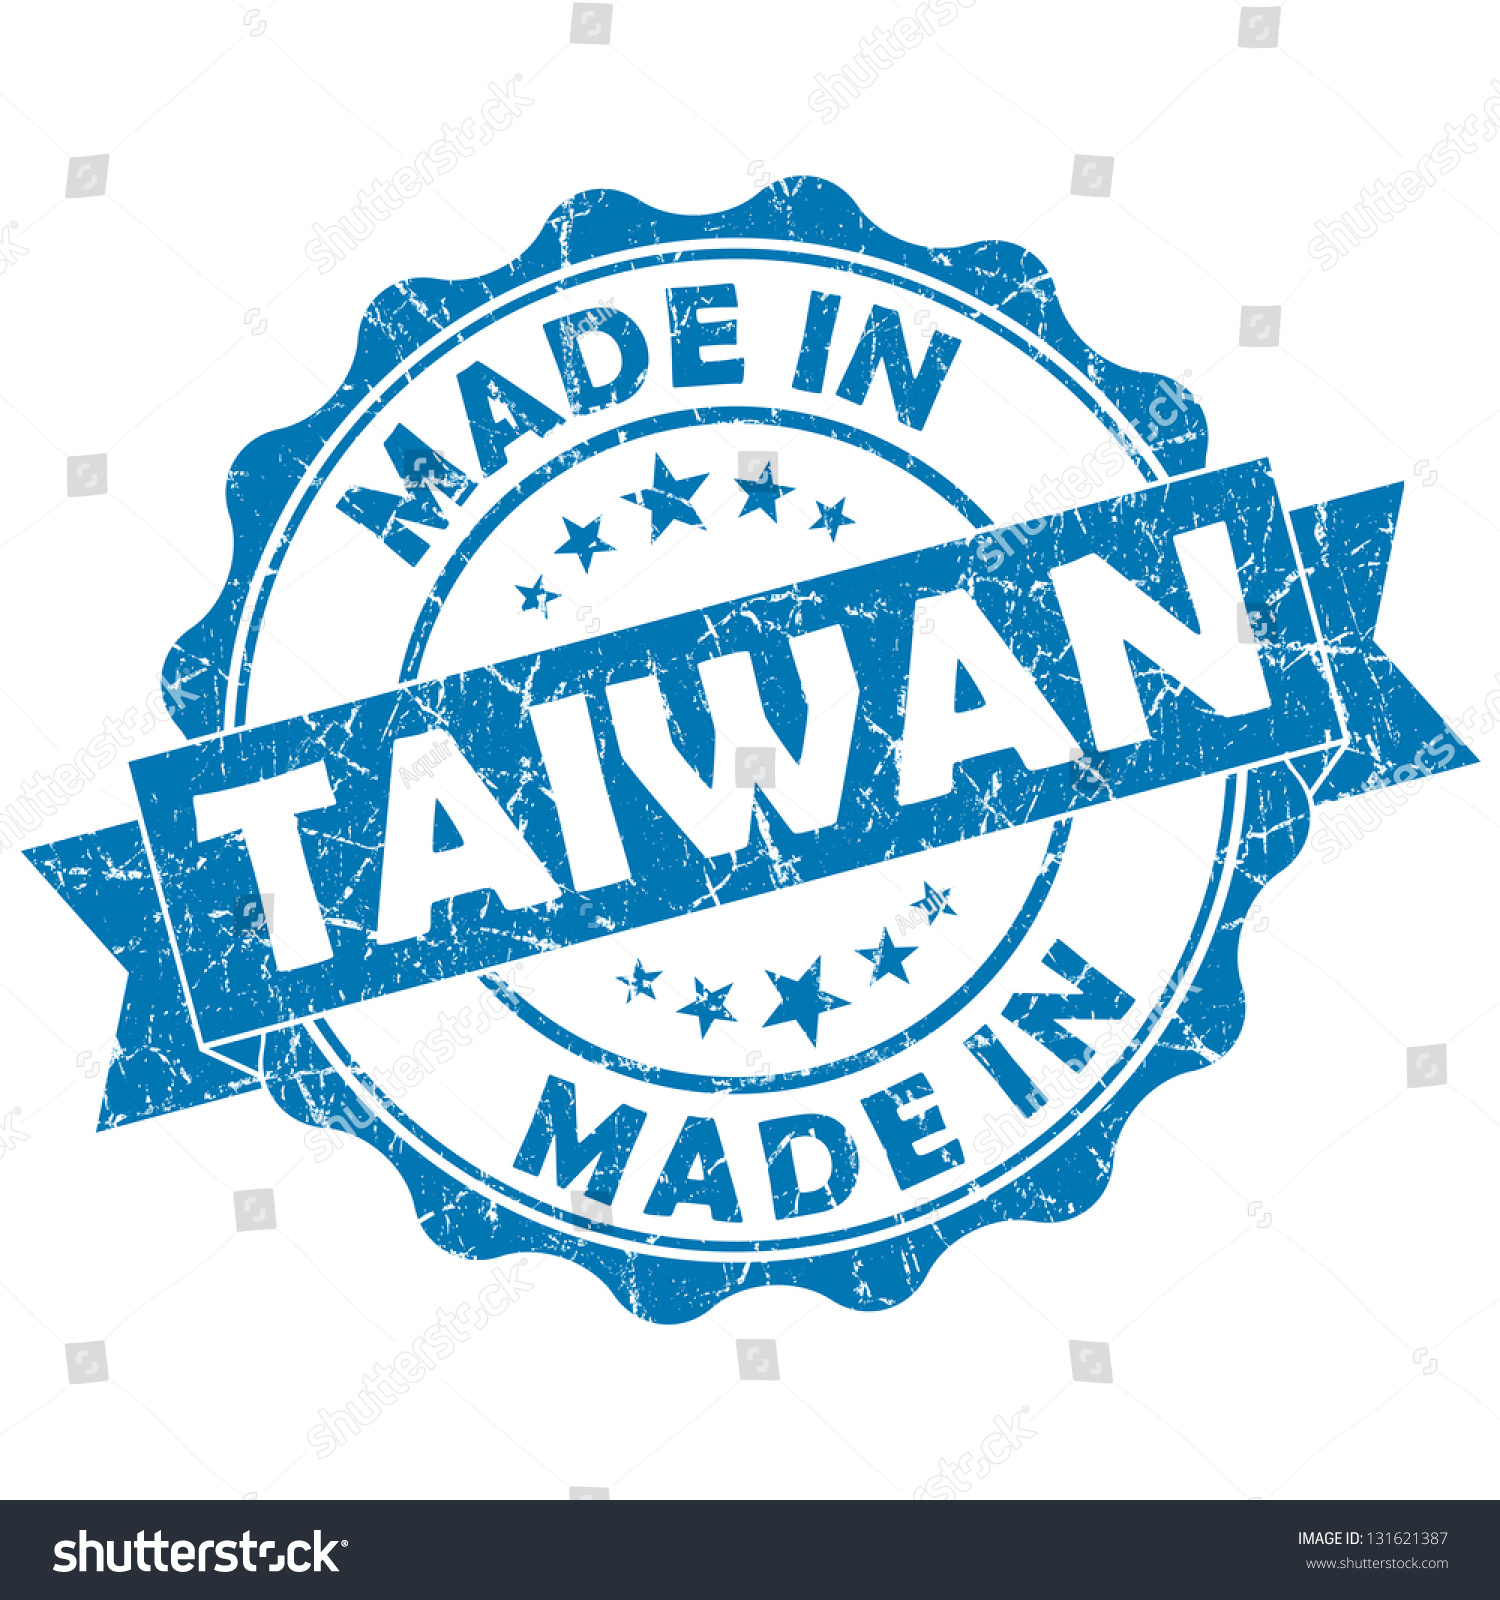 made in taiwan stamp stock photo 131621387 shutterstock. Black Bedroom Furniture Sets. Home Design Ideas